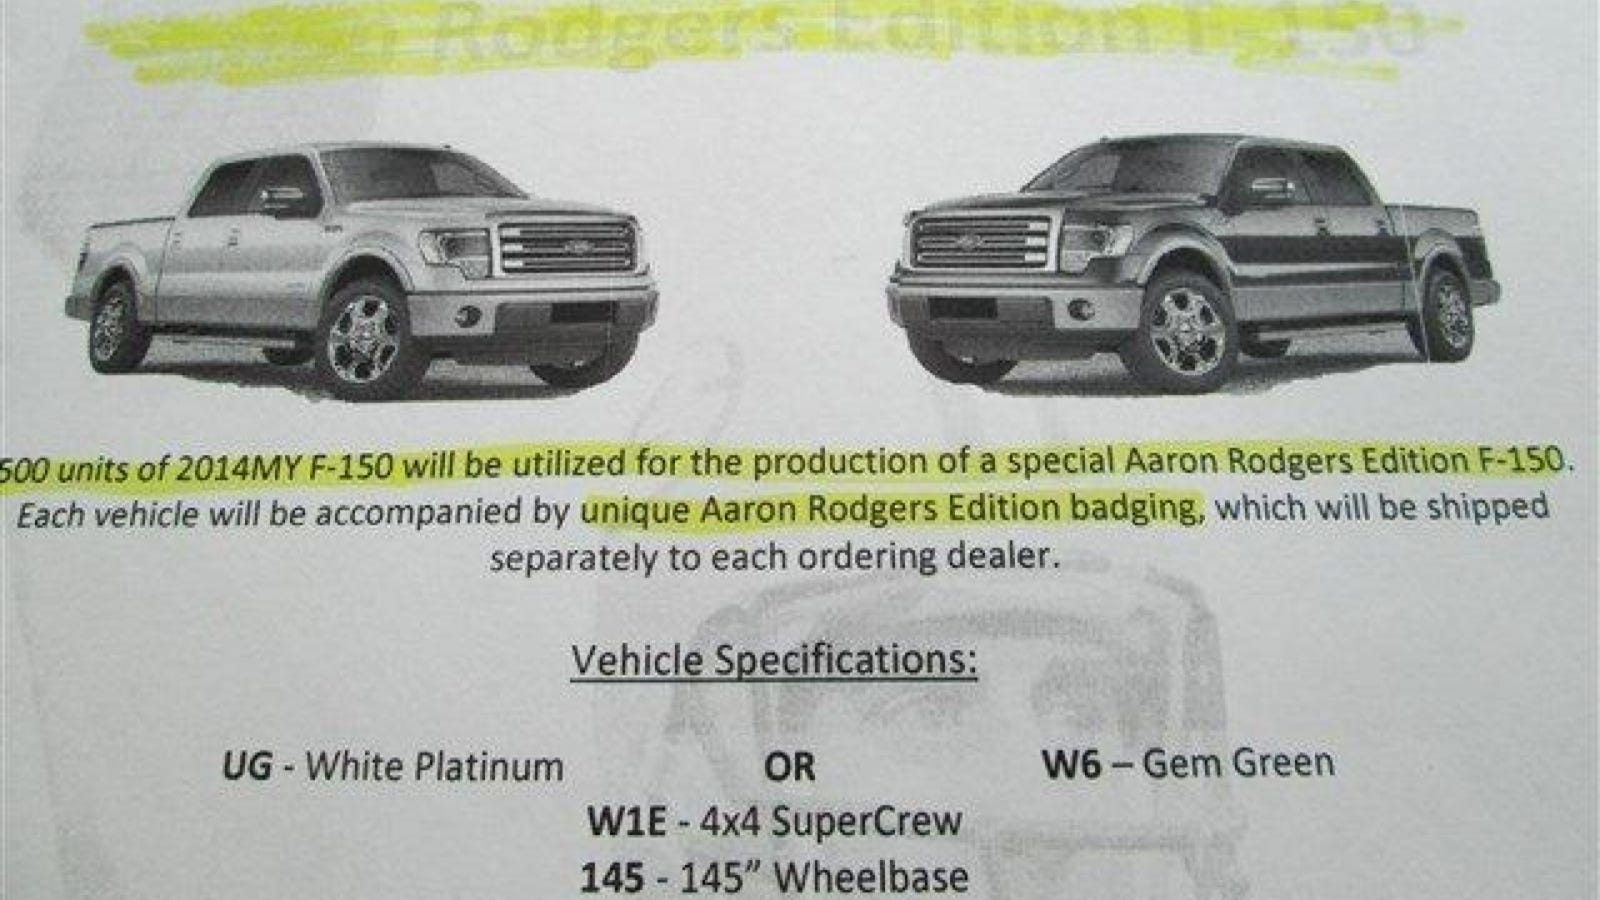 Aaron Rodgers Edition F 150 Might Be Saddest Dealership Promo Ever